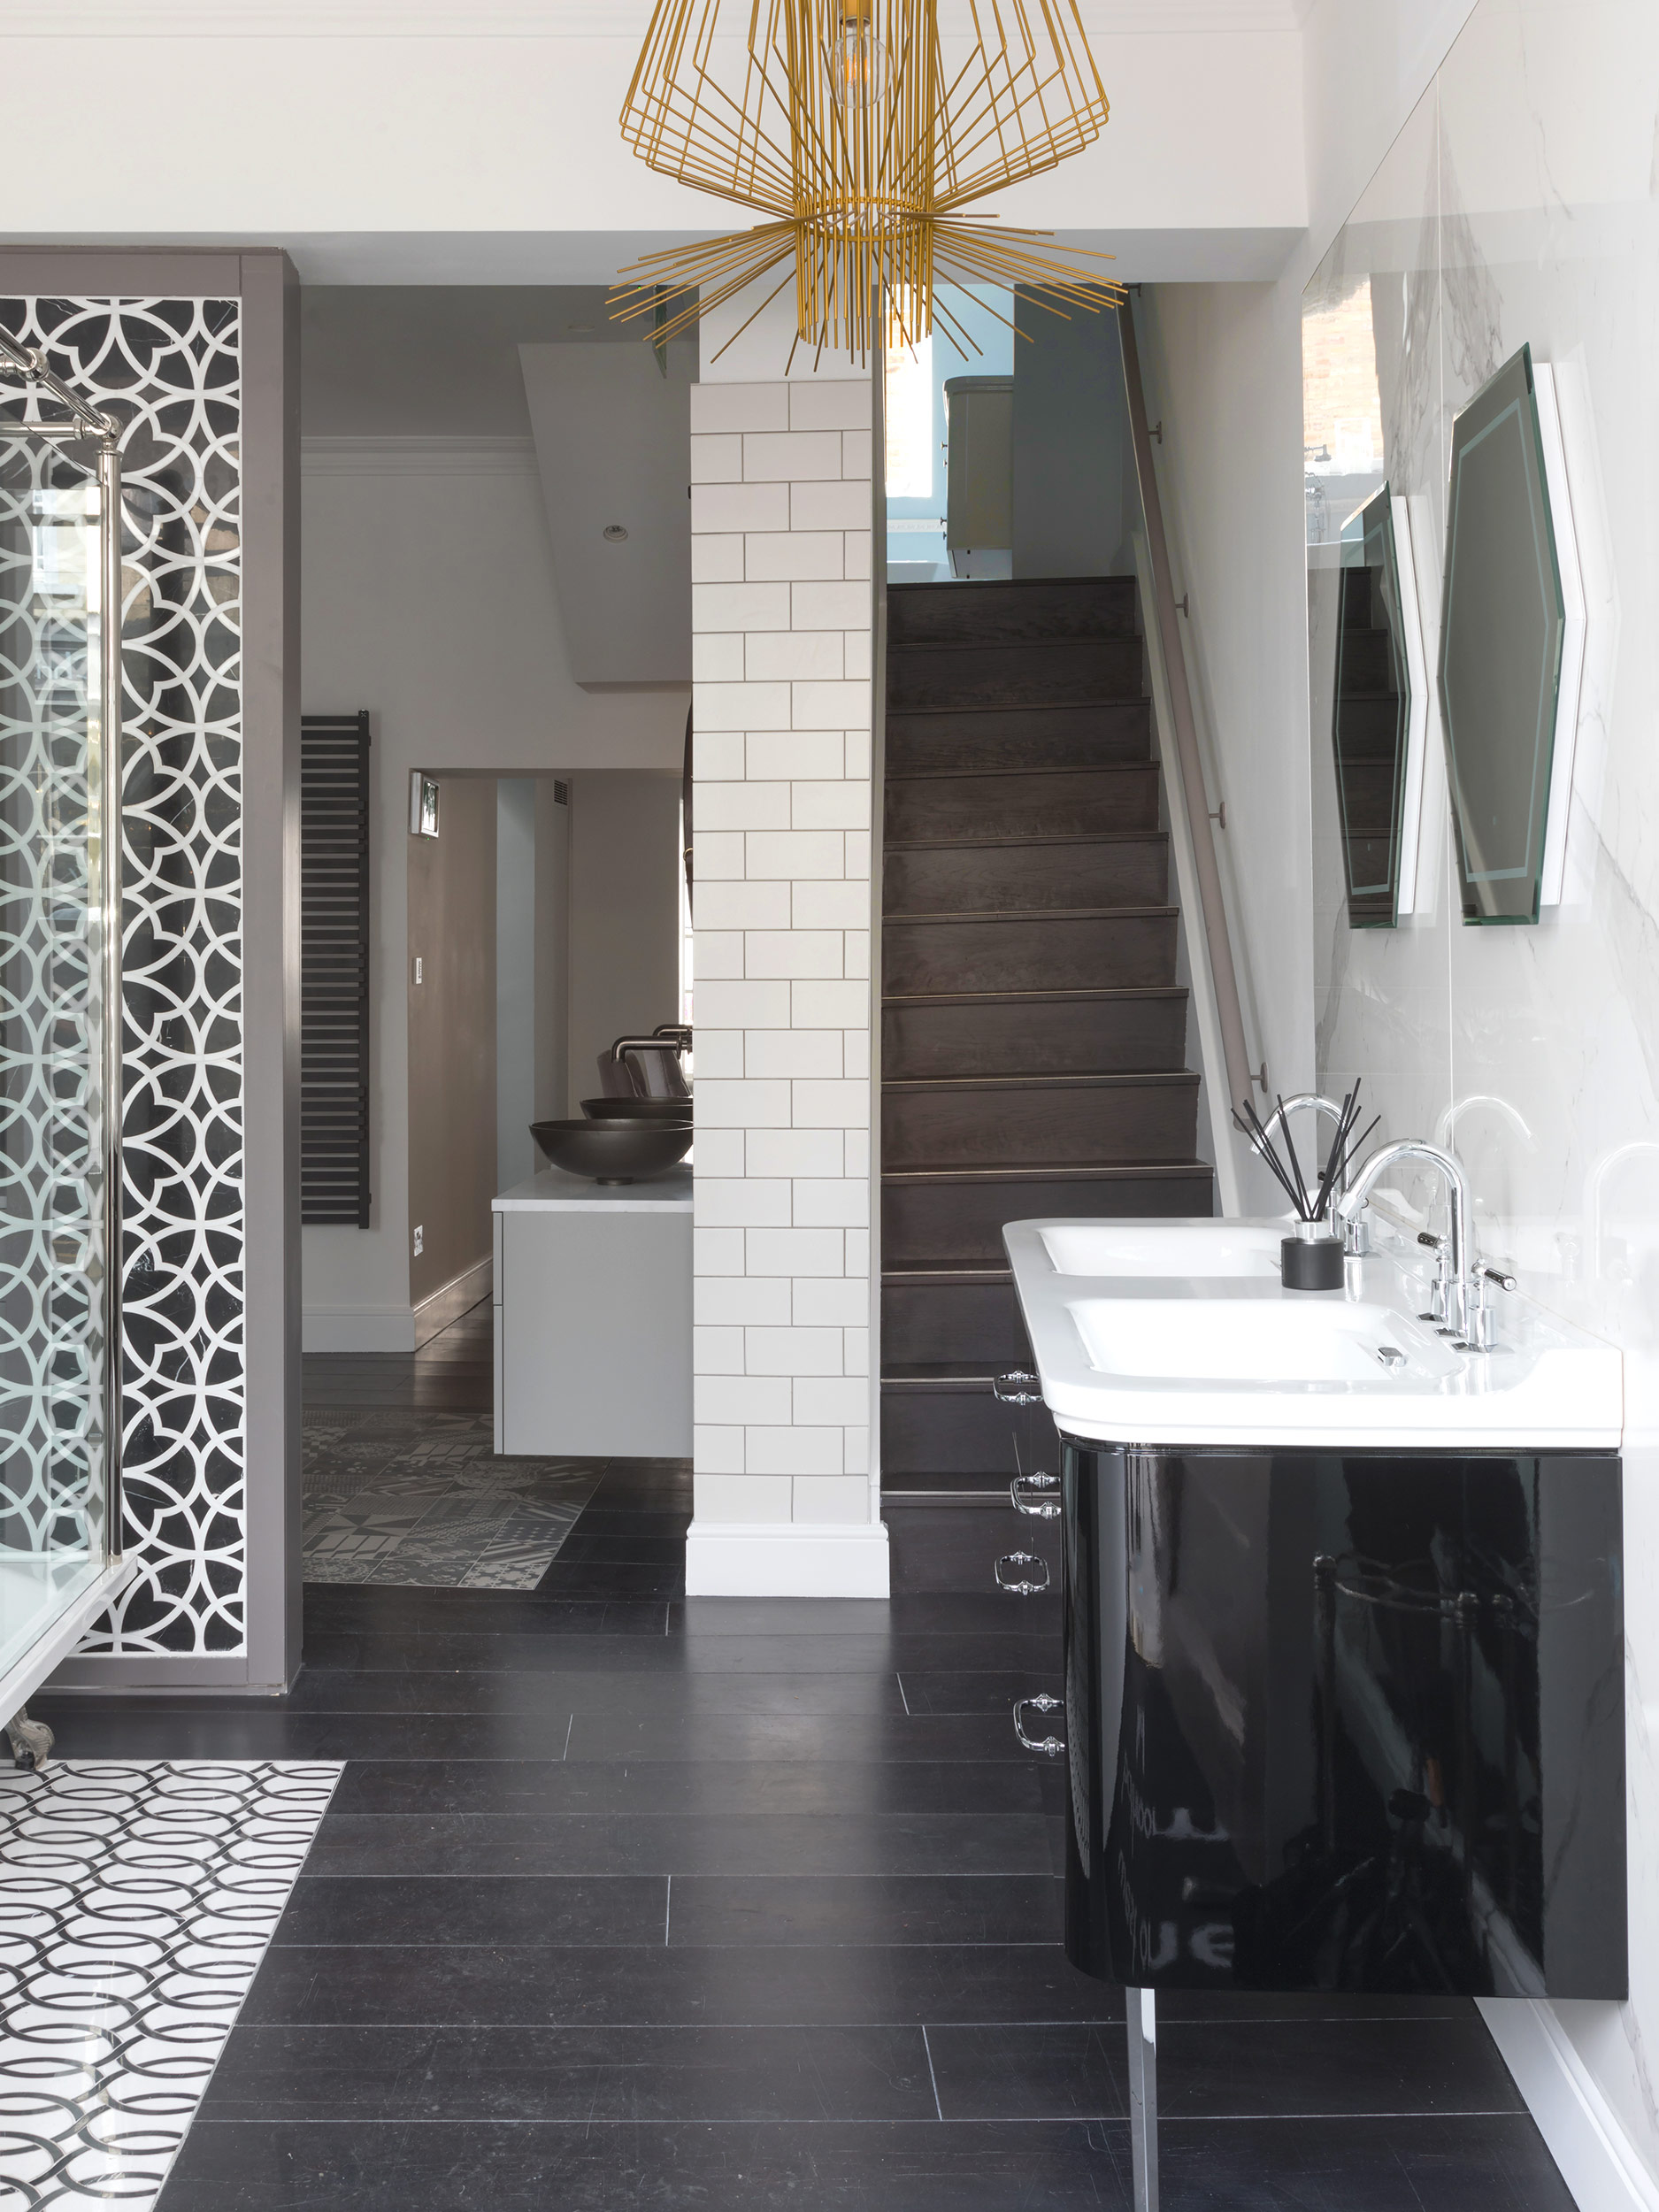 West One Bathrooms Kings Road Chelsea Showroom 8